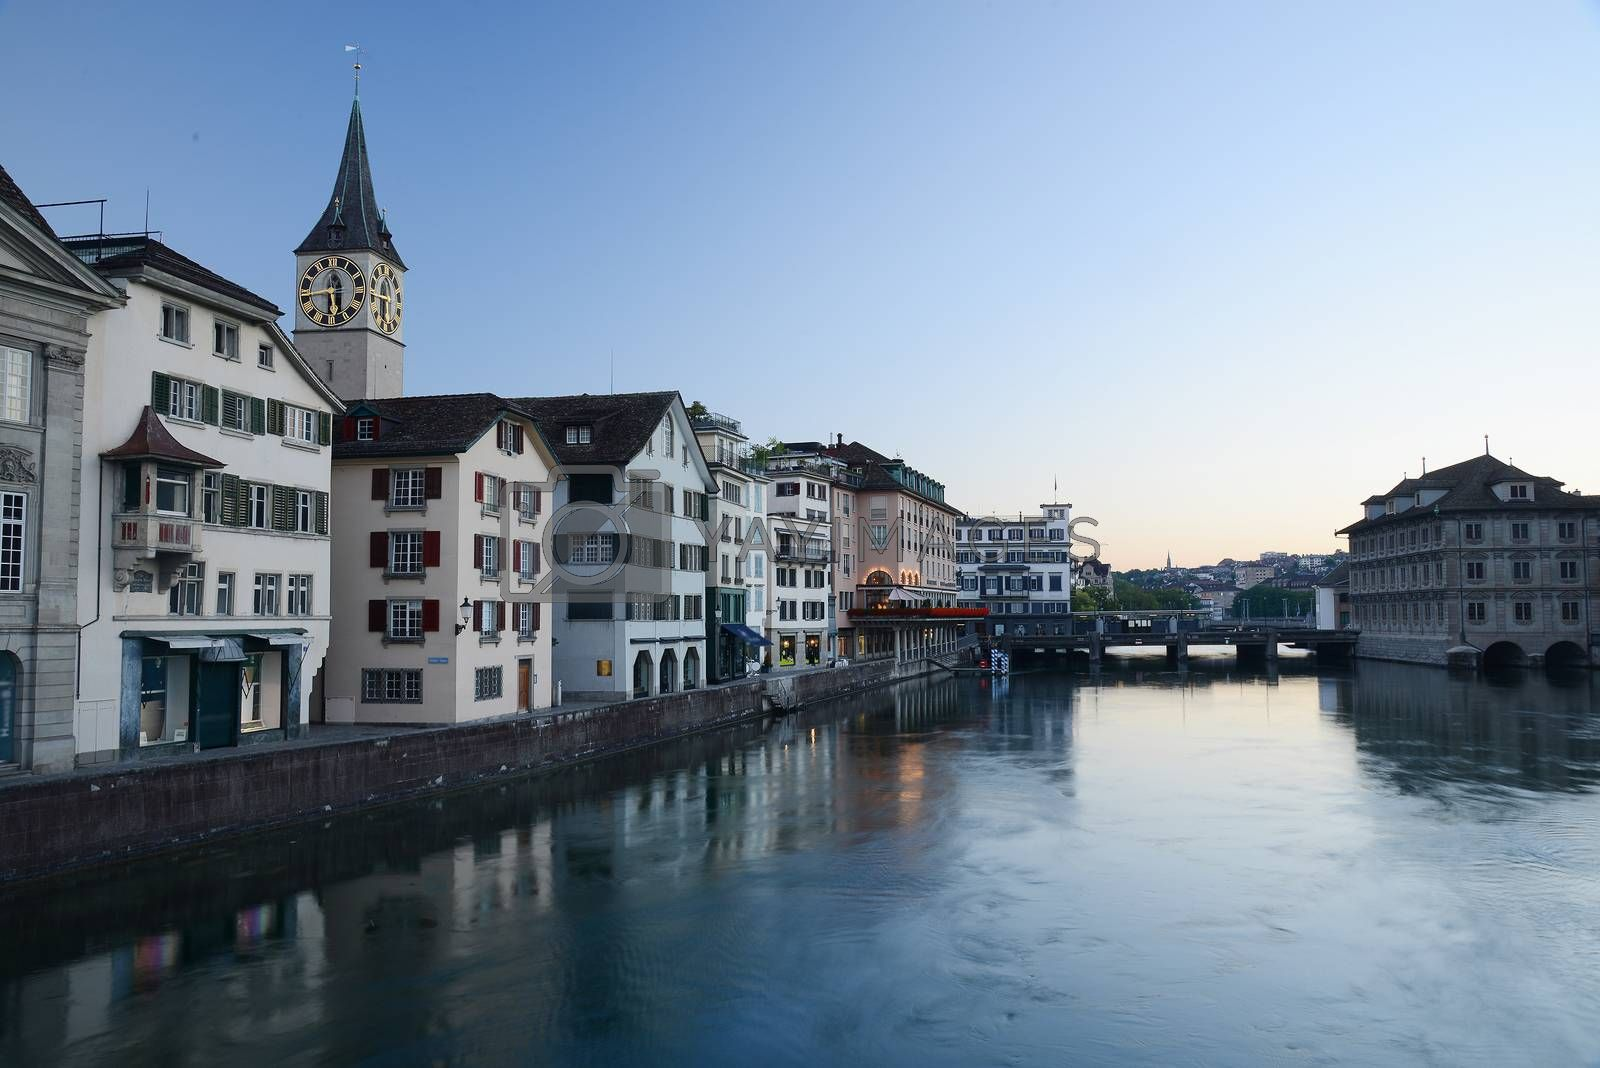 Royalty free image of zurich morning view by porbital